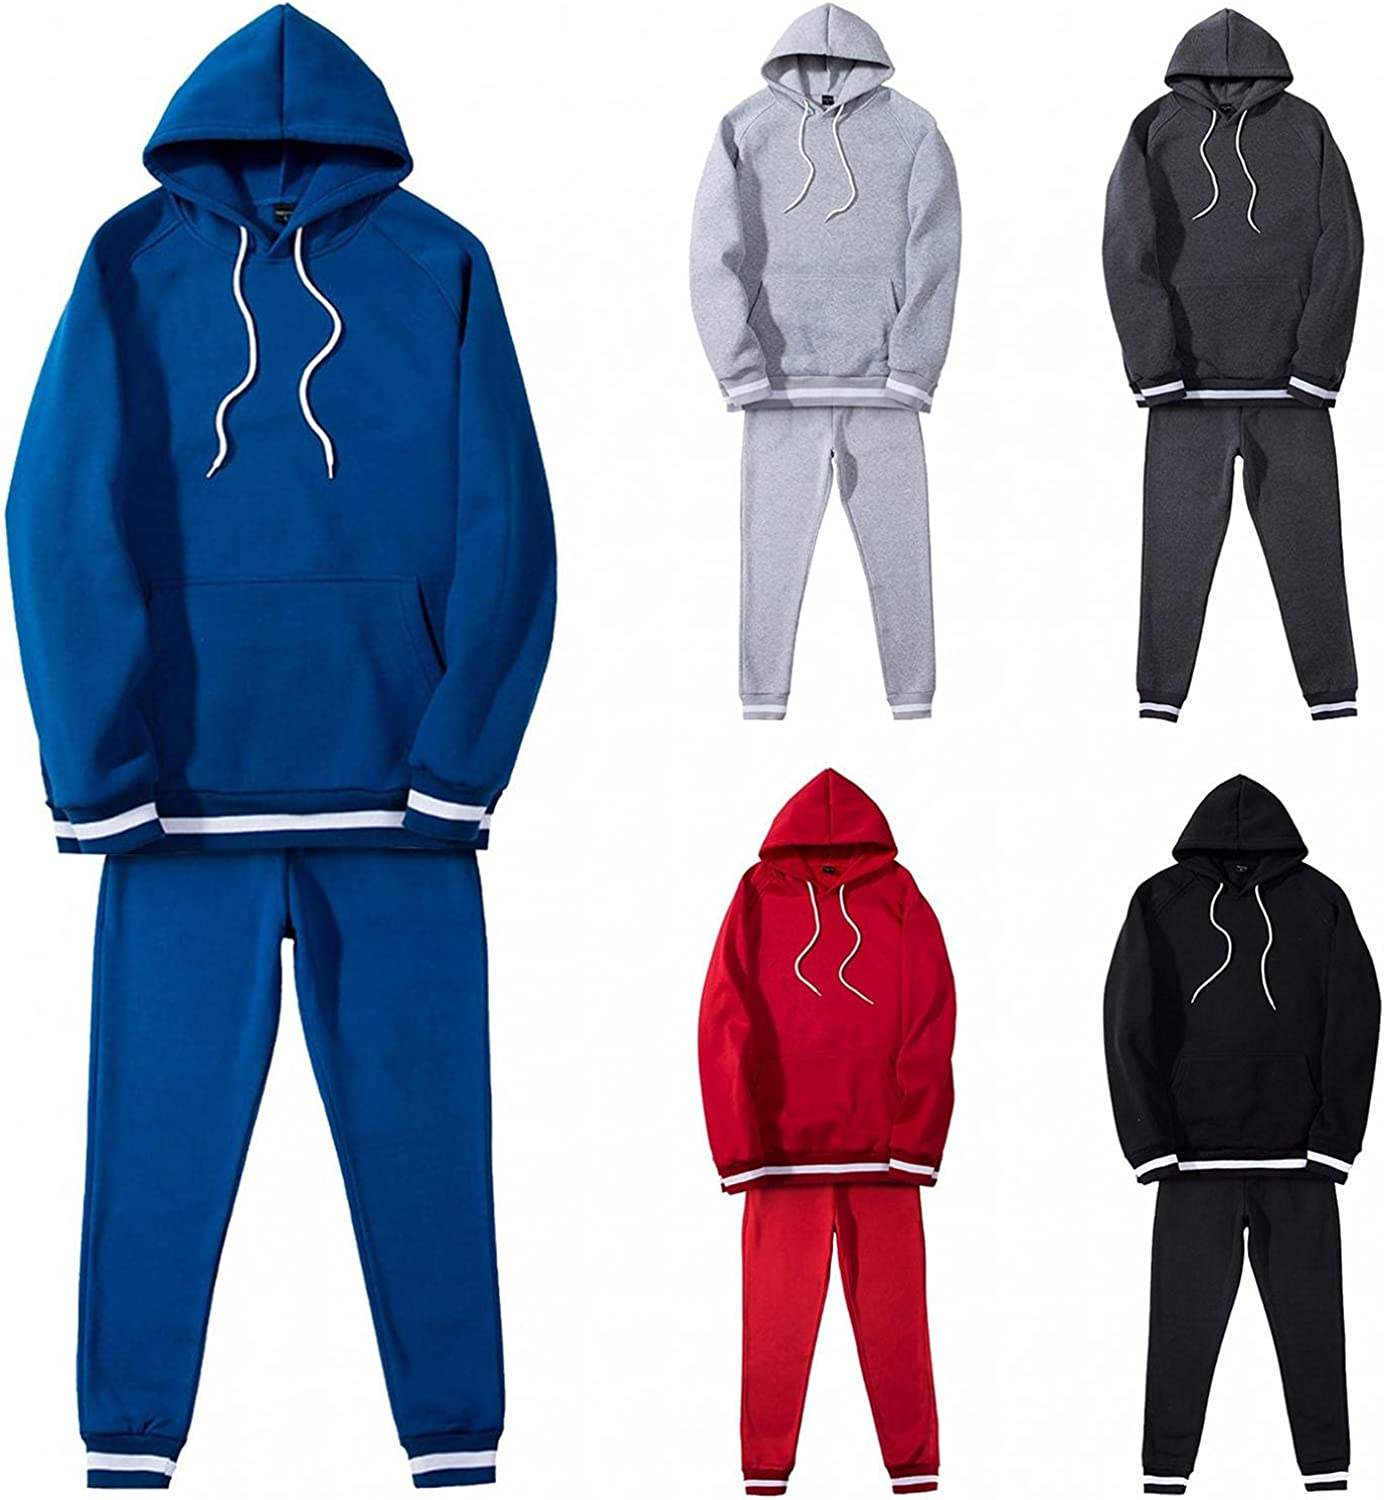 JSPOYOU Mens Athletic Tracksuit Long Sleeve Hooded Sweatshirt and Pants Sweatsuits Running Jogging Athletic Sweat Suits Set